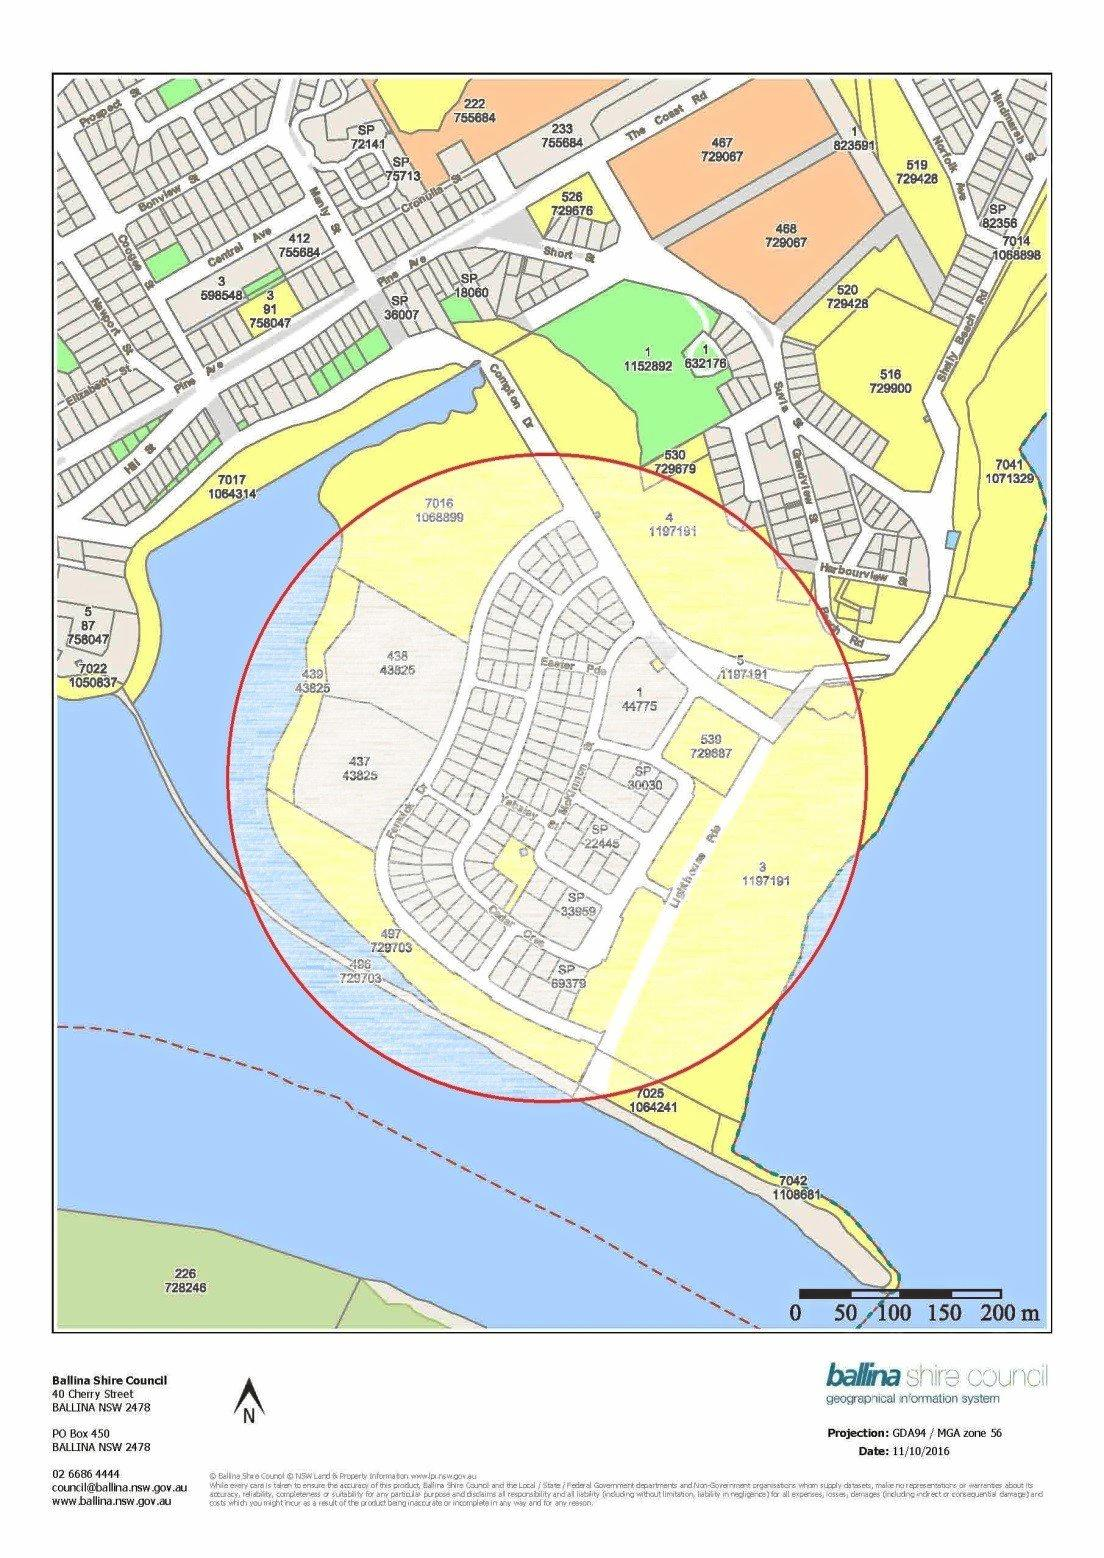 WATER CUT OFF: Area to be effected by cut to water supply.